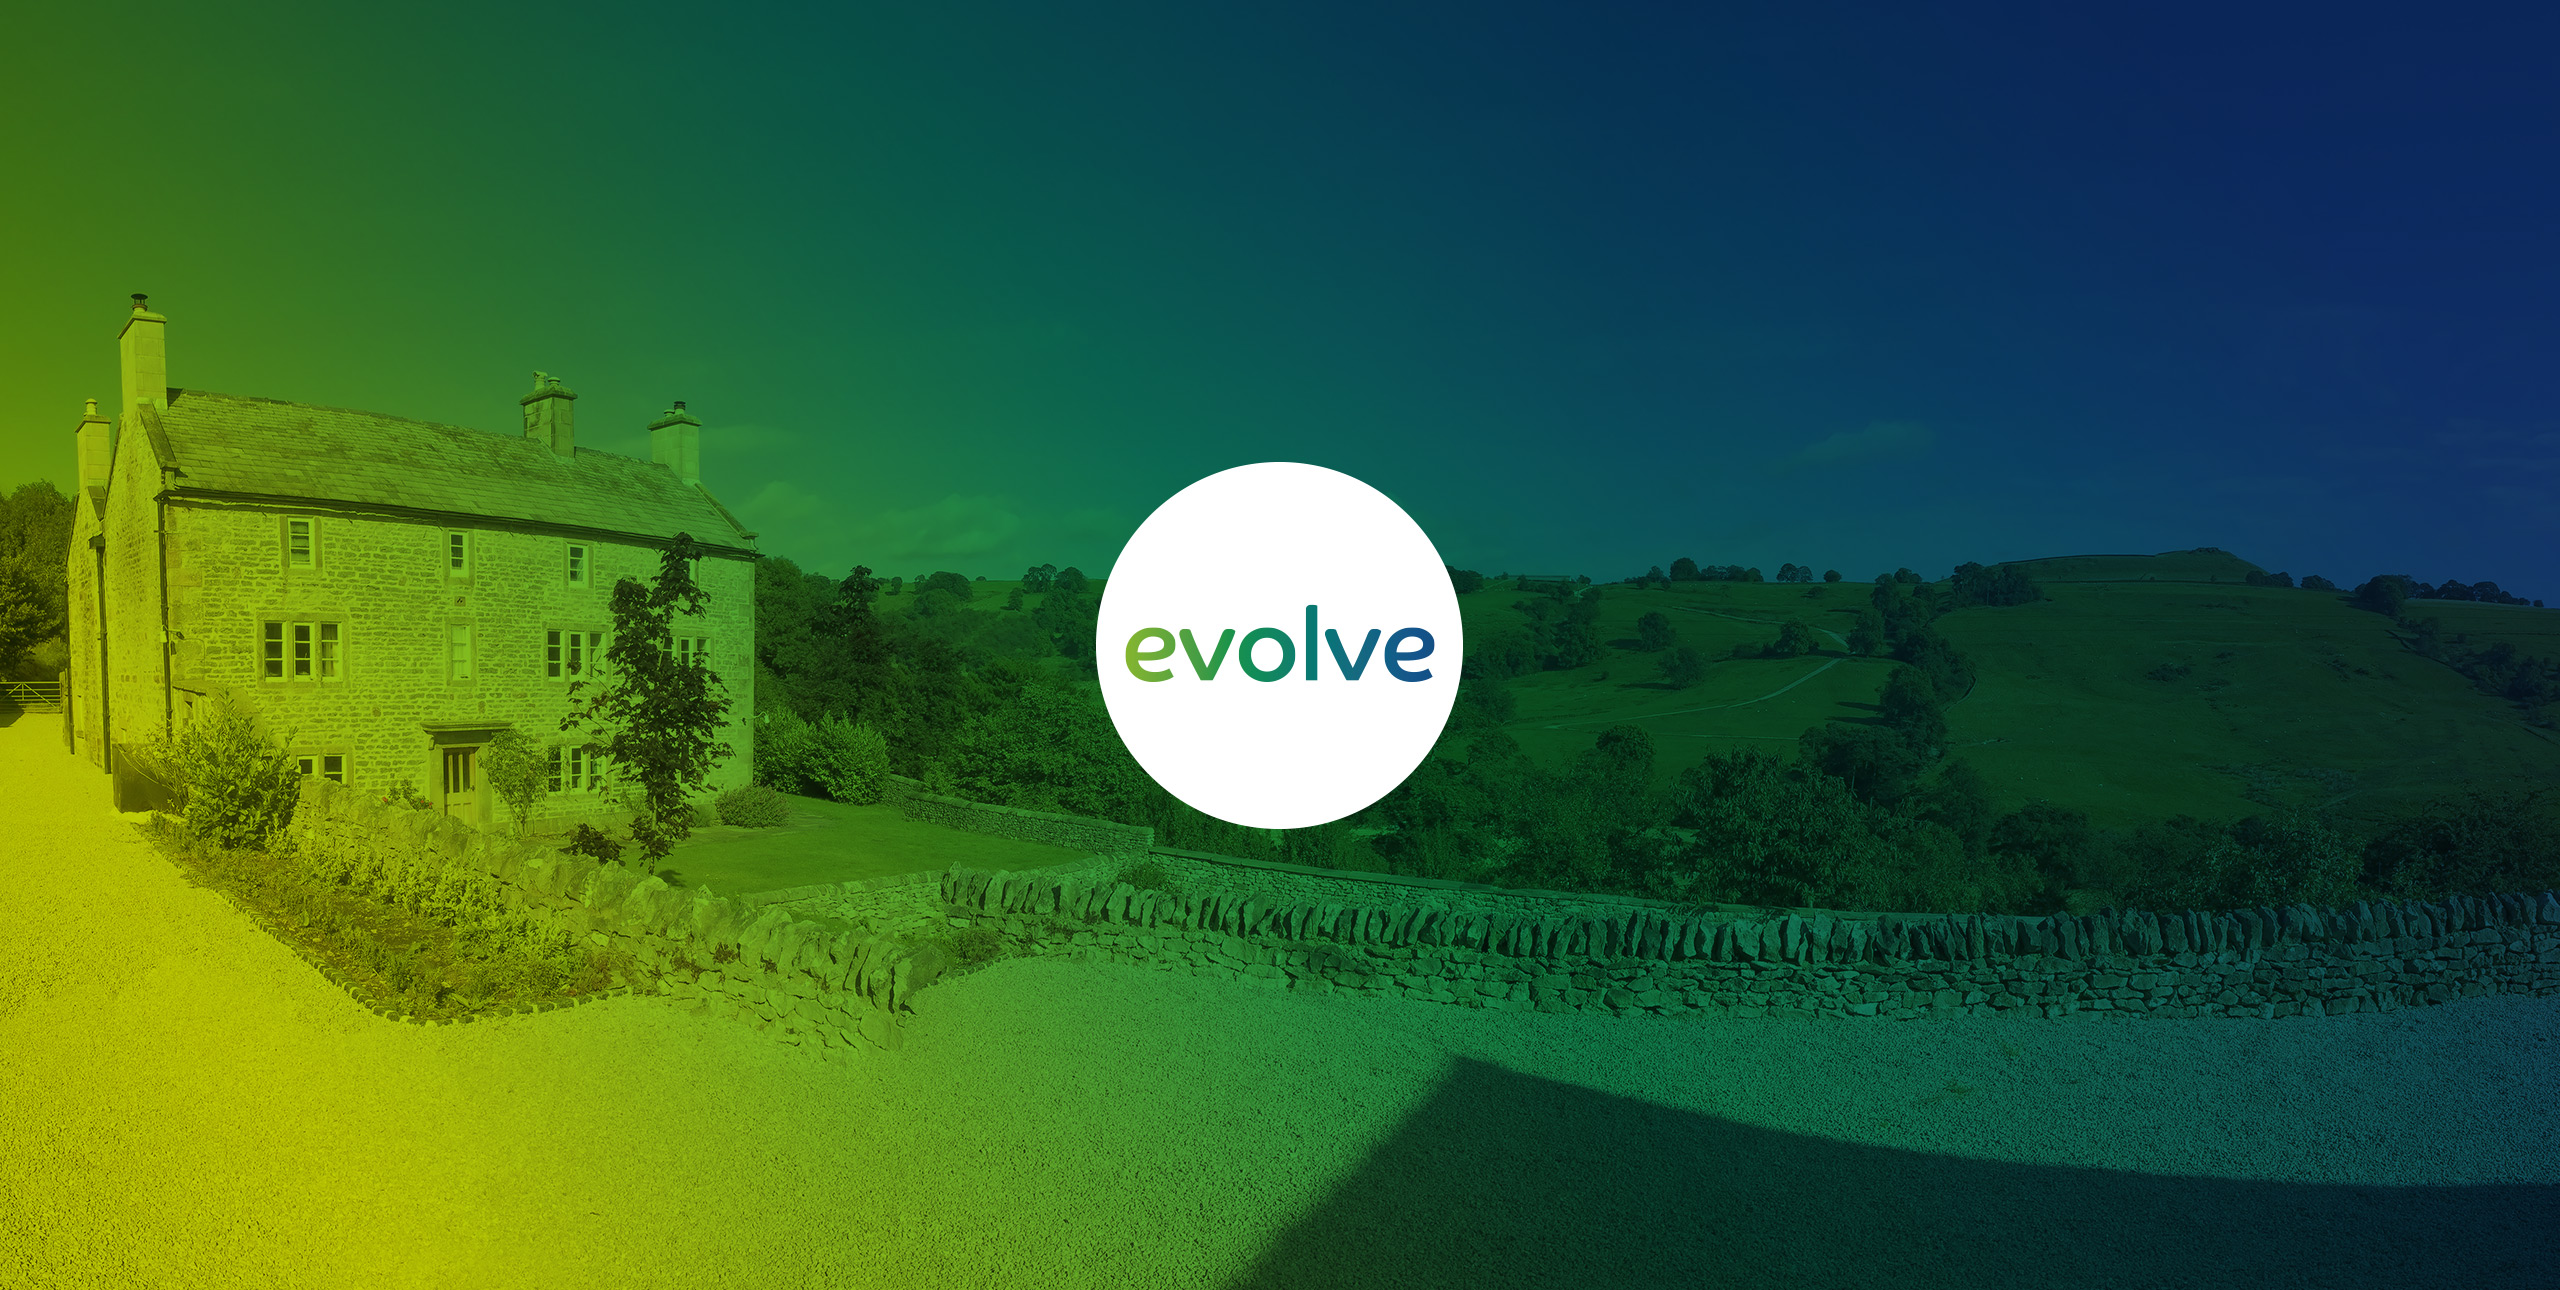 Evolve Estate Agents